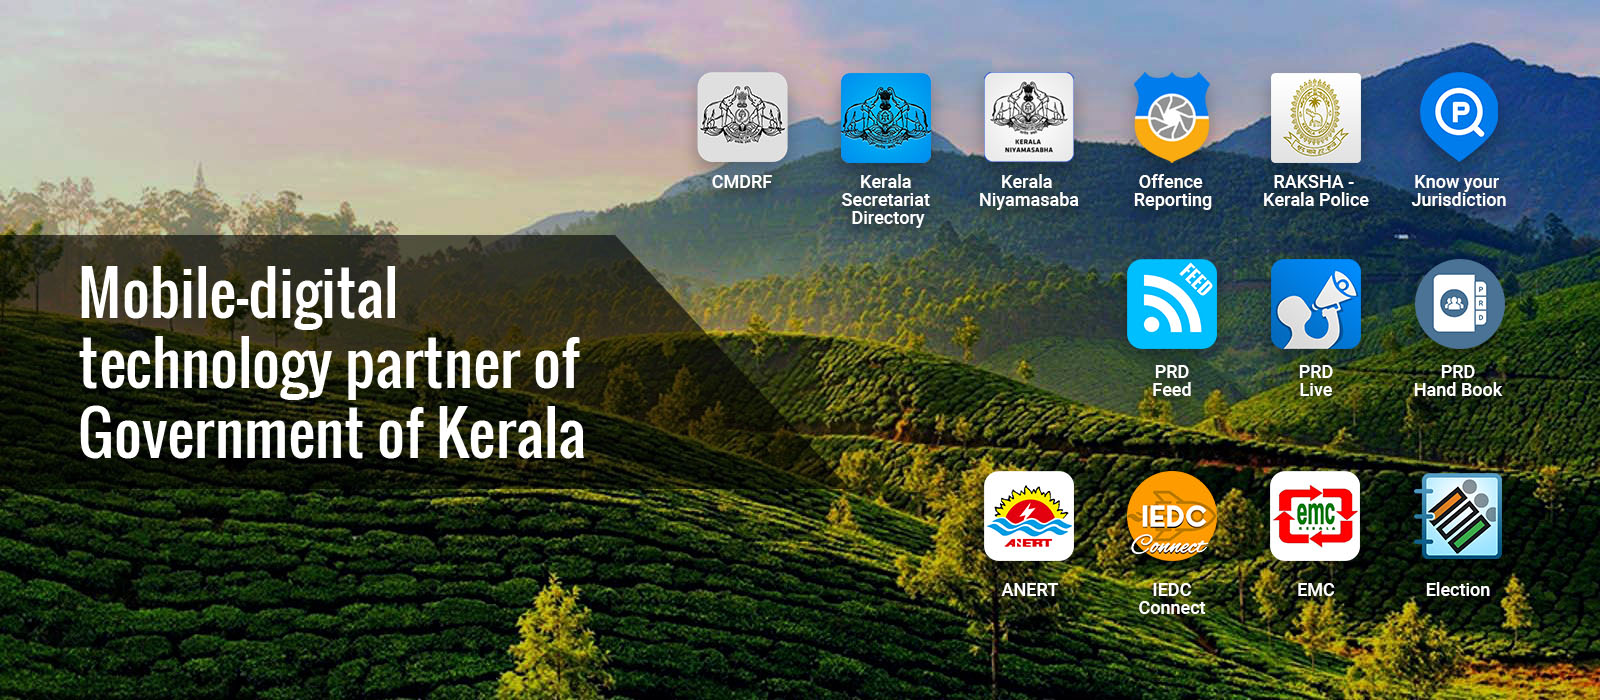 Mobile digital technology patner for Goverment of Kerala